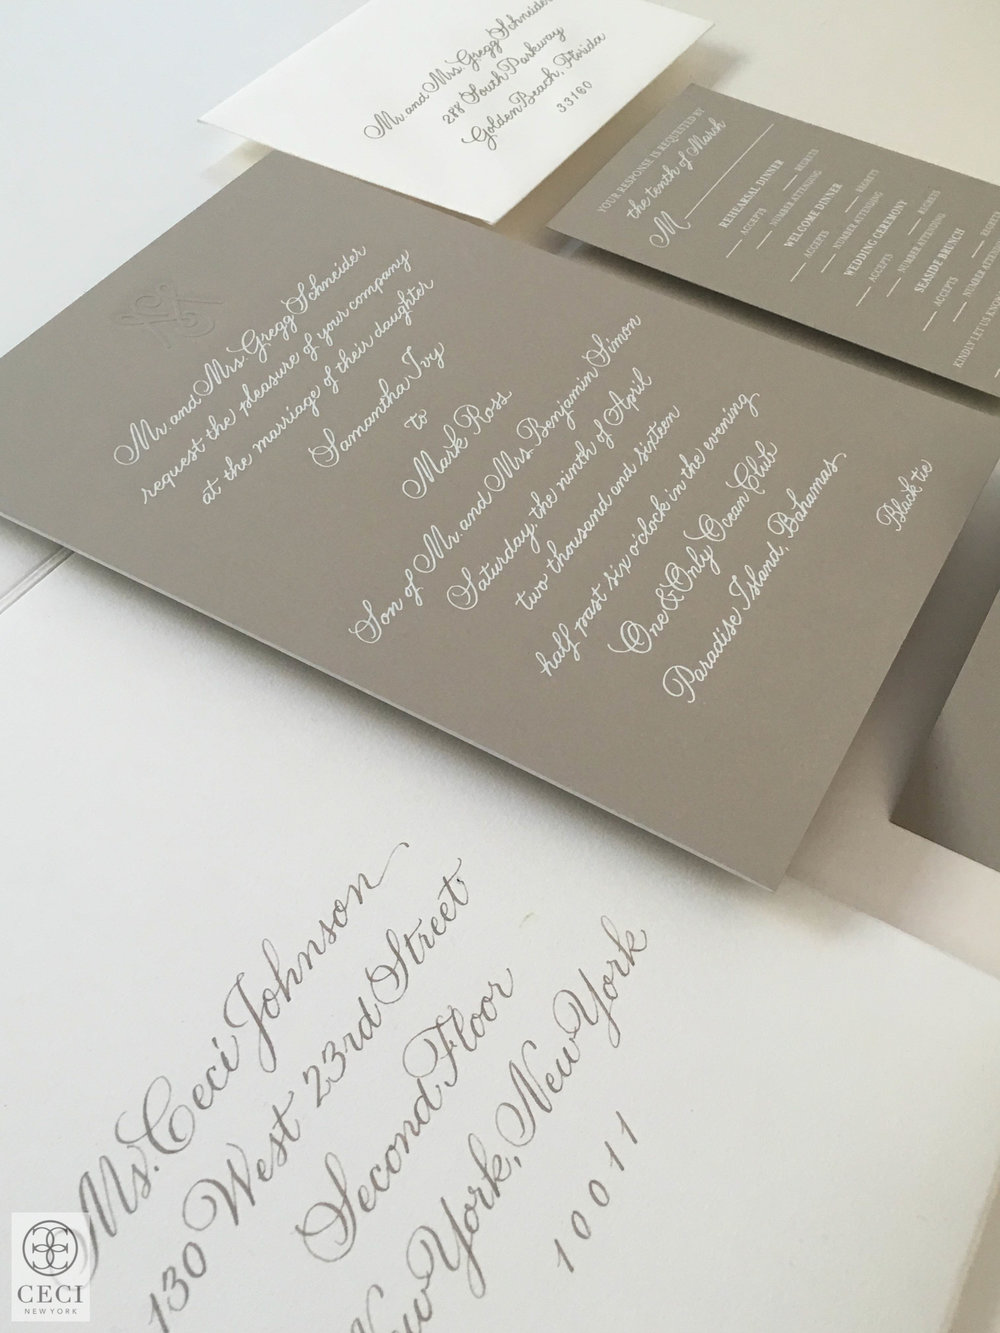 Ceci_New_York_Ceci_Style_Ceci_Johnson_Luxury_Lifestyle_Paradise_Island_Bahamas_Wedding_Engraved_Inspiration_Design_Custom_Couture_Personalized_Invitations_--5.jpg